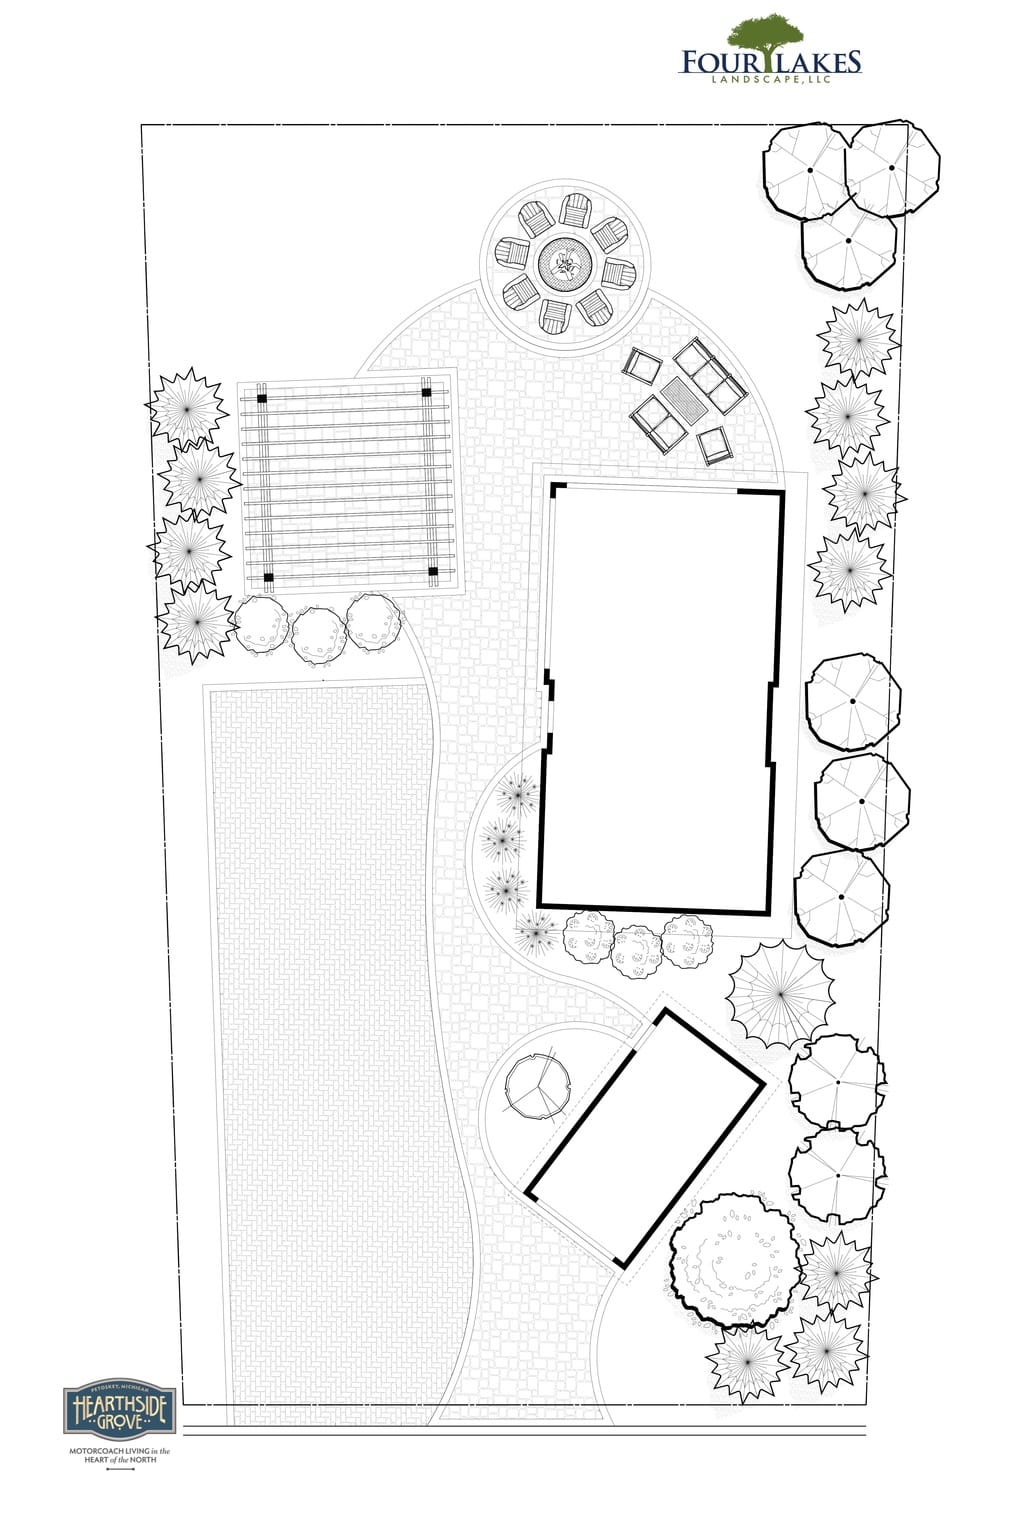 Hearthside Grove Motorcoach Resort Design - Lot 223